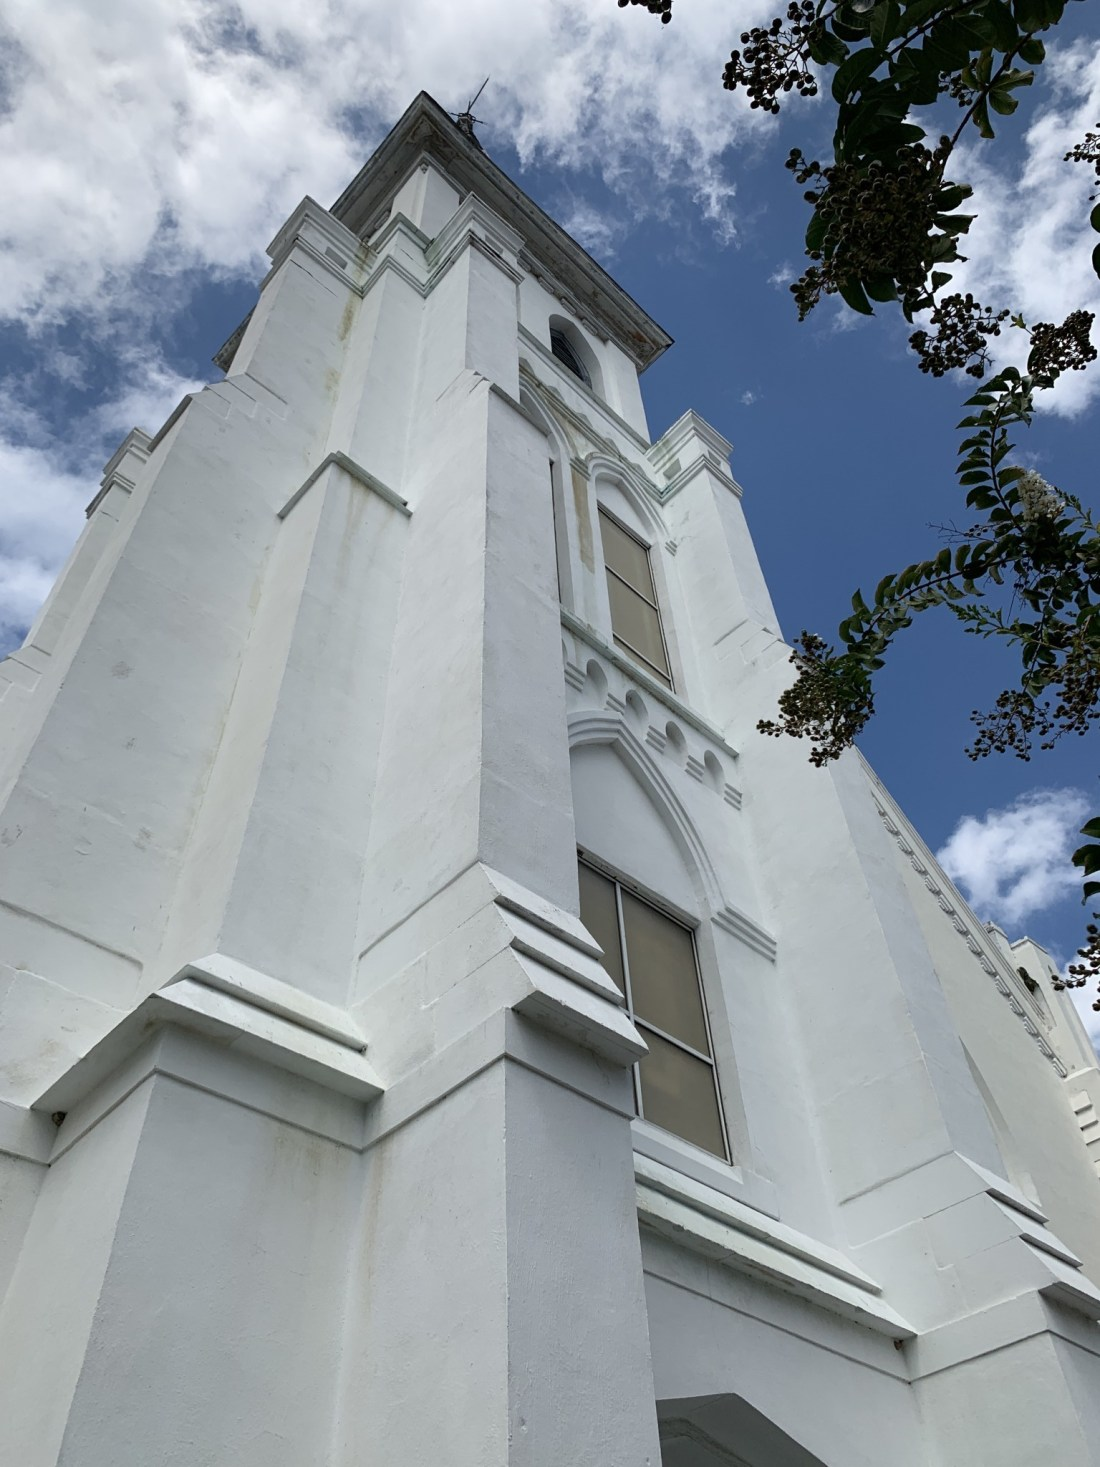 Mother Emanuel AME Church